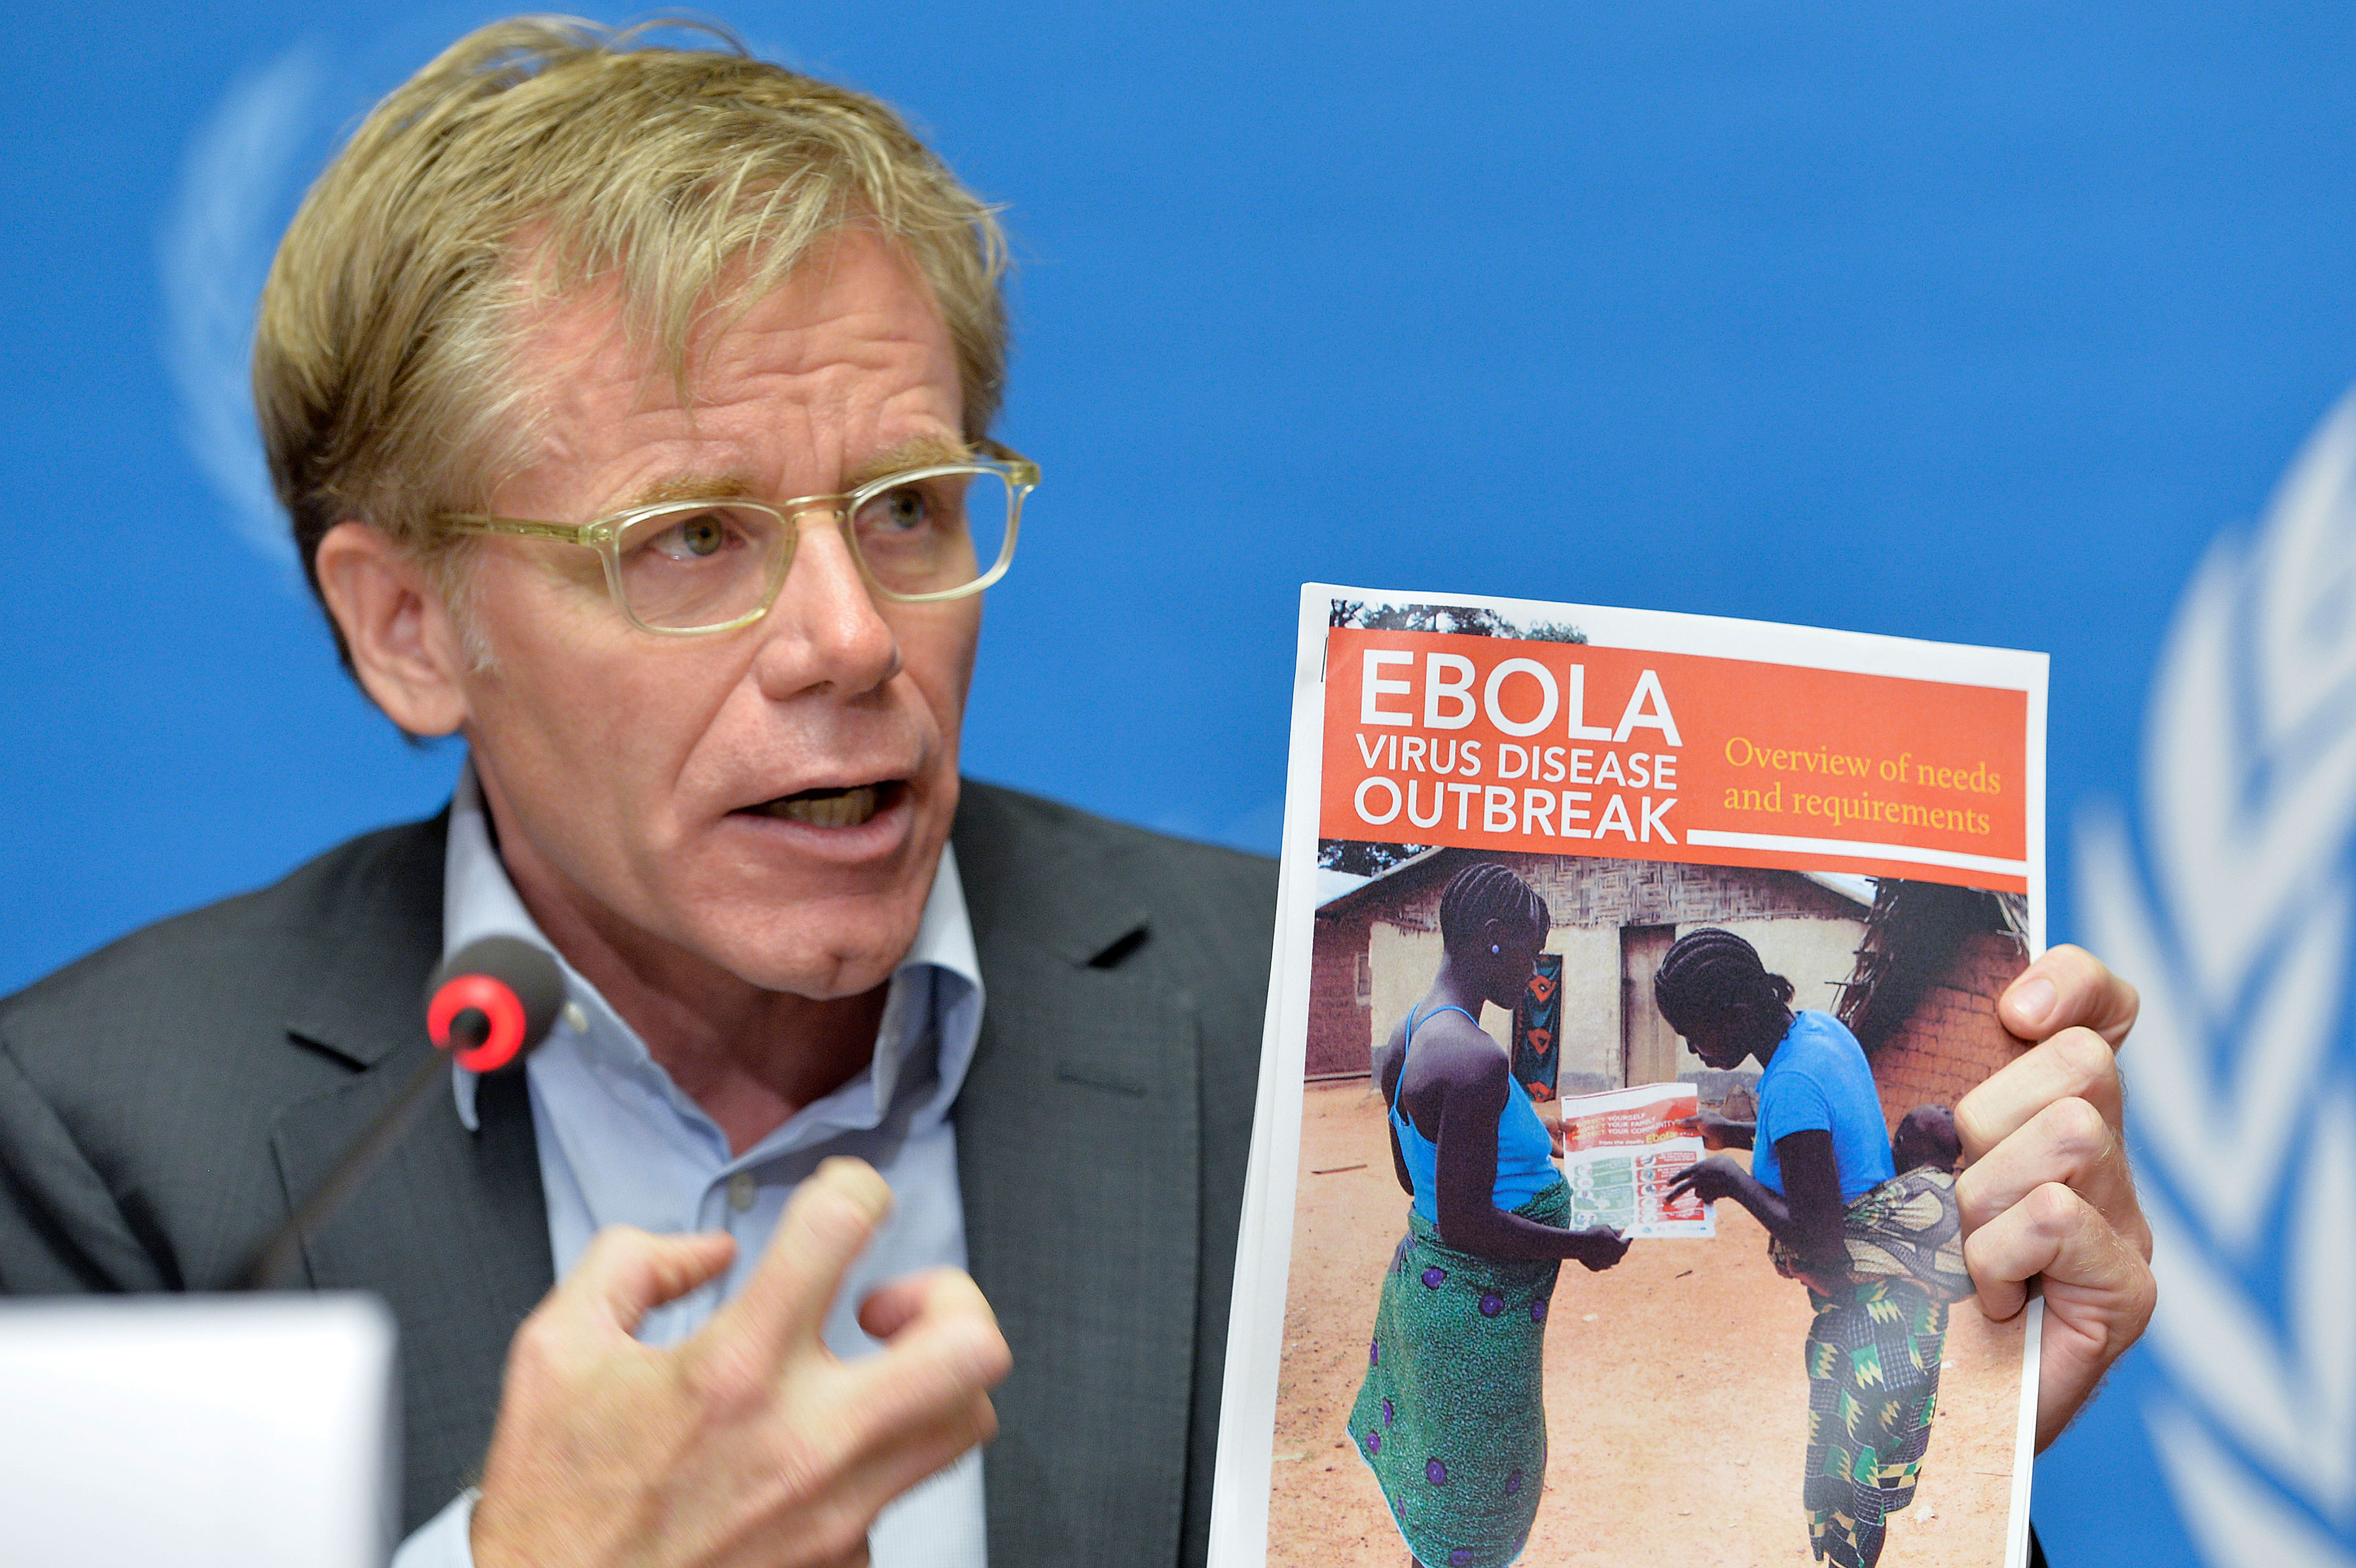 """Dr. Bruce Aylward delivers his plan for an international response to the West Africa Ebola outbreak at a September 2014 press conference at the World Health Organization at Geneva. The first step in dealing with an emergency, says Aylward, """"is break down the unknown, because we actually know a lot more than we often recognize that we know."""" (U.N. photo by Jean-Marc Ferré)"""